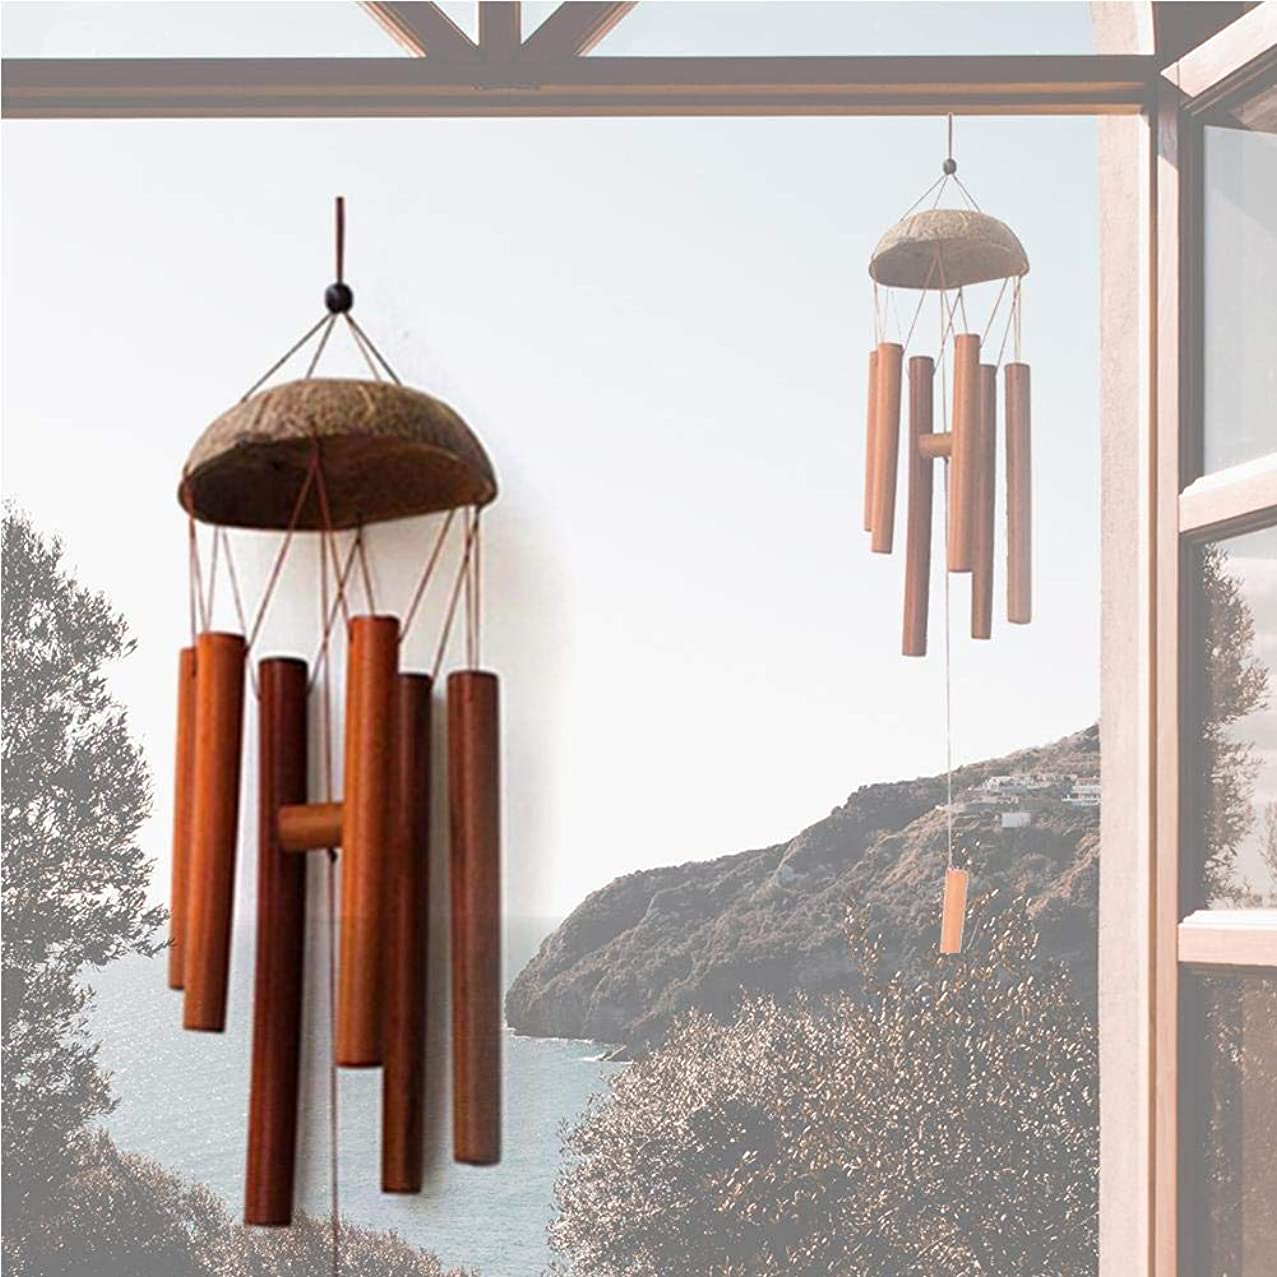 Bamboo Wind Chime,Wind Chime Large Bell Tubes Coconut Wood Handmade in Bali